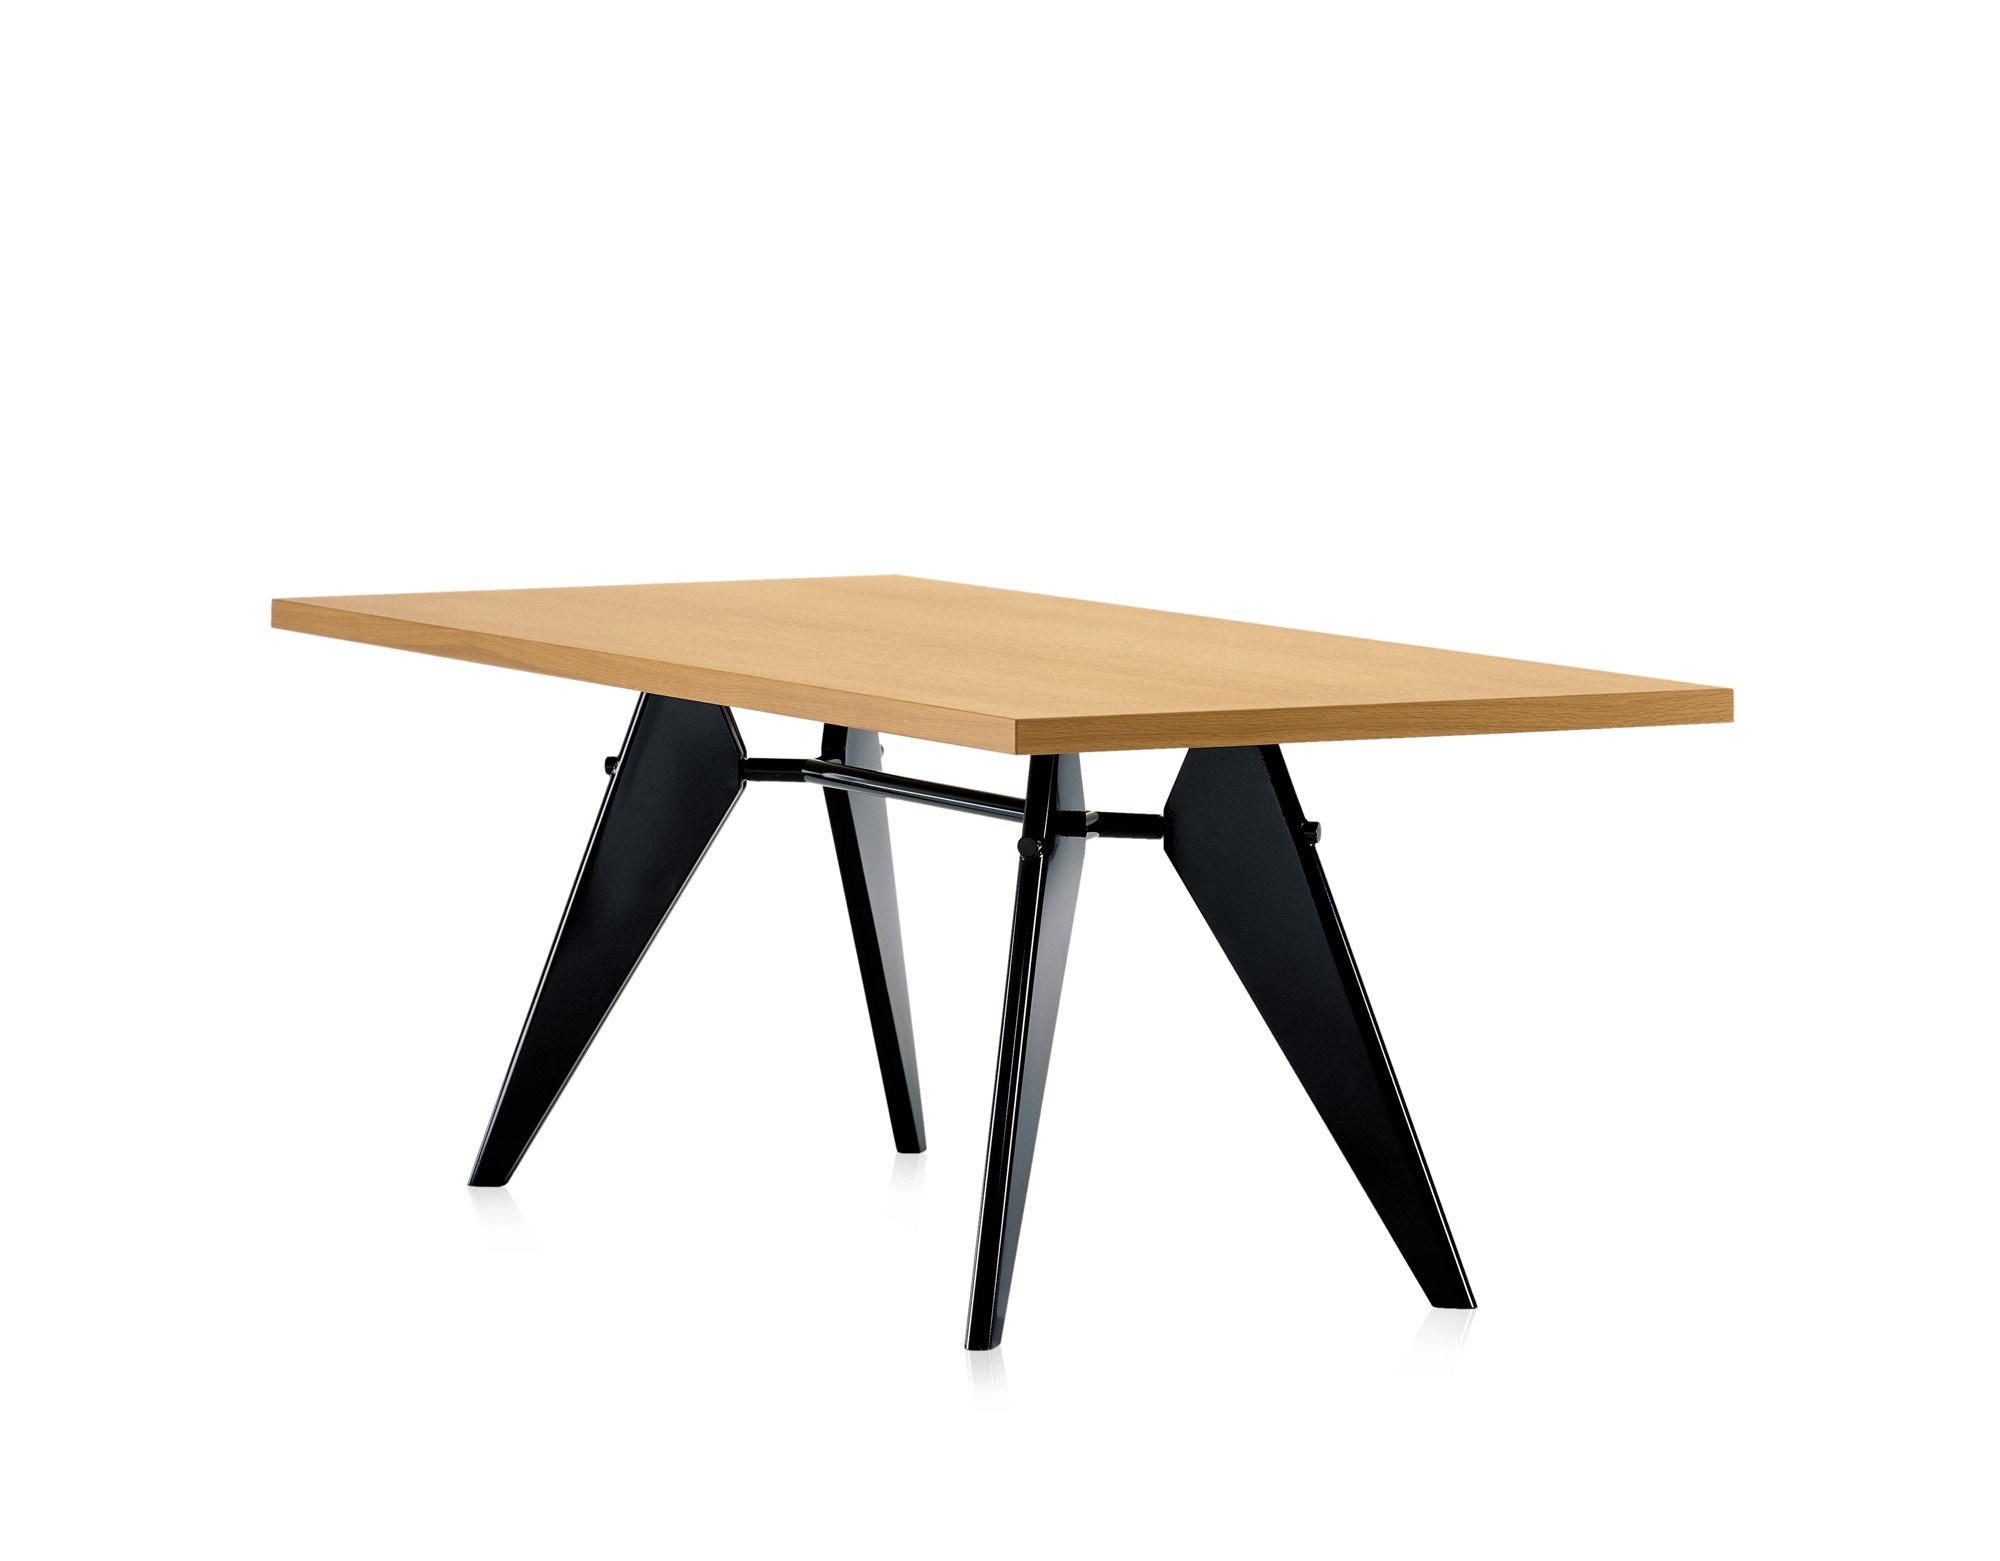 Fabuleux Vitra Jean Prouve EM Table - Modern Planet NU22